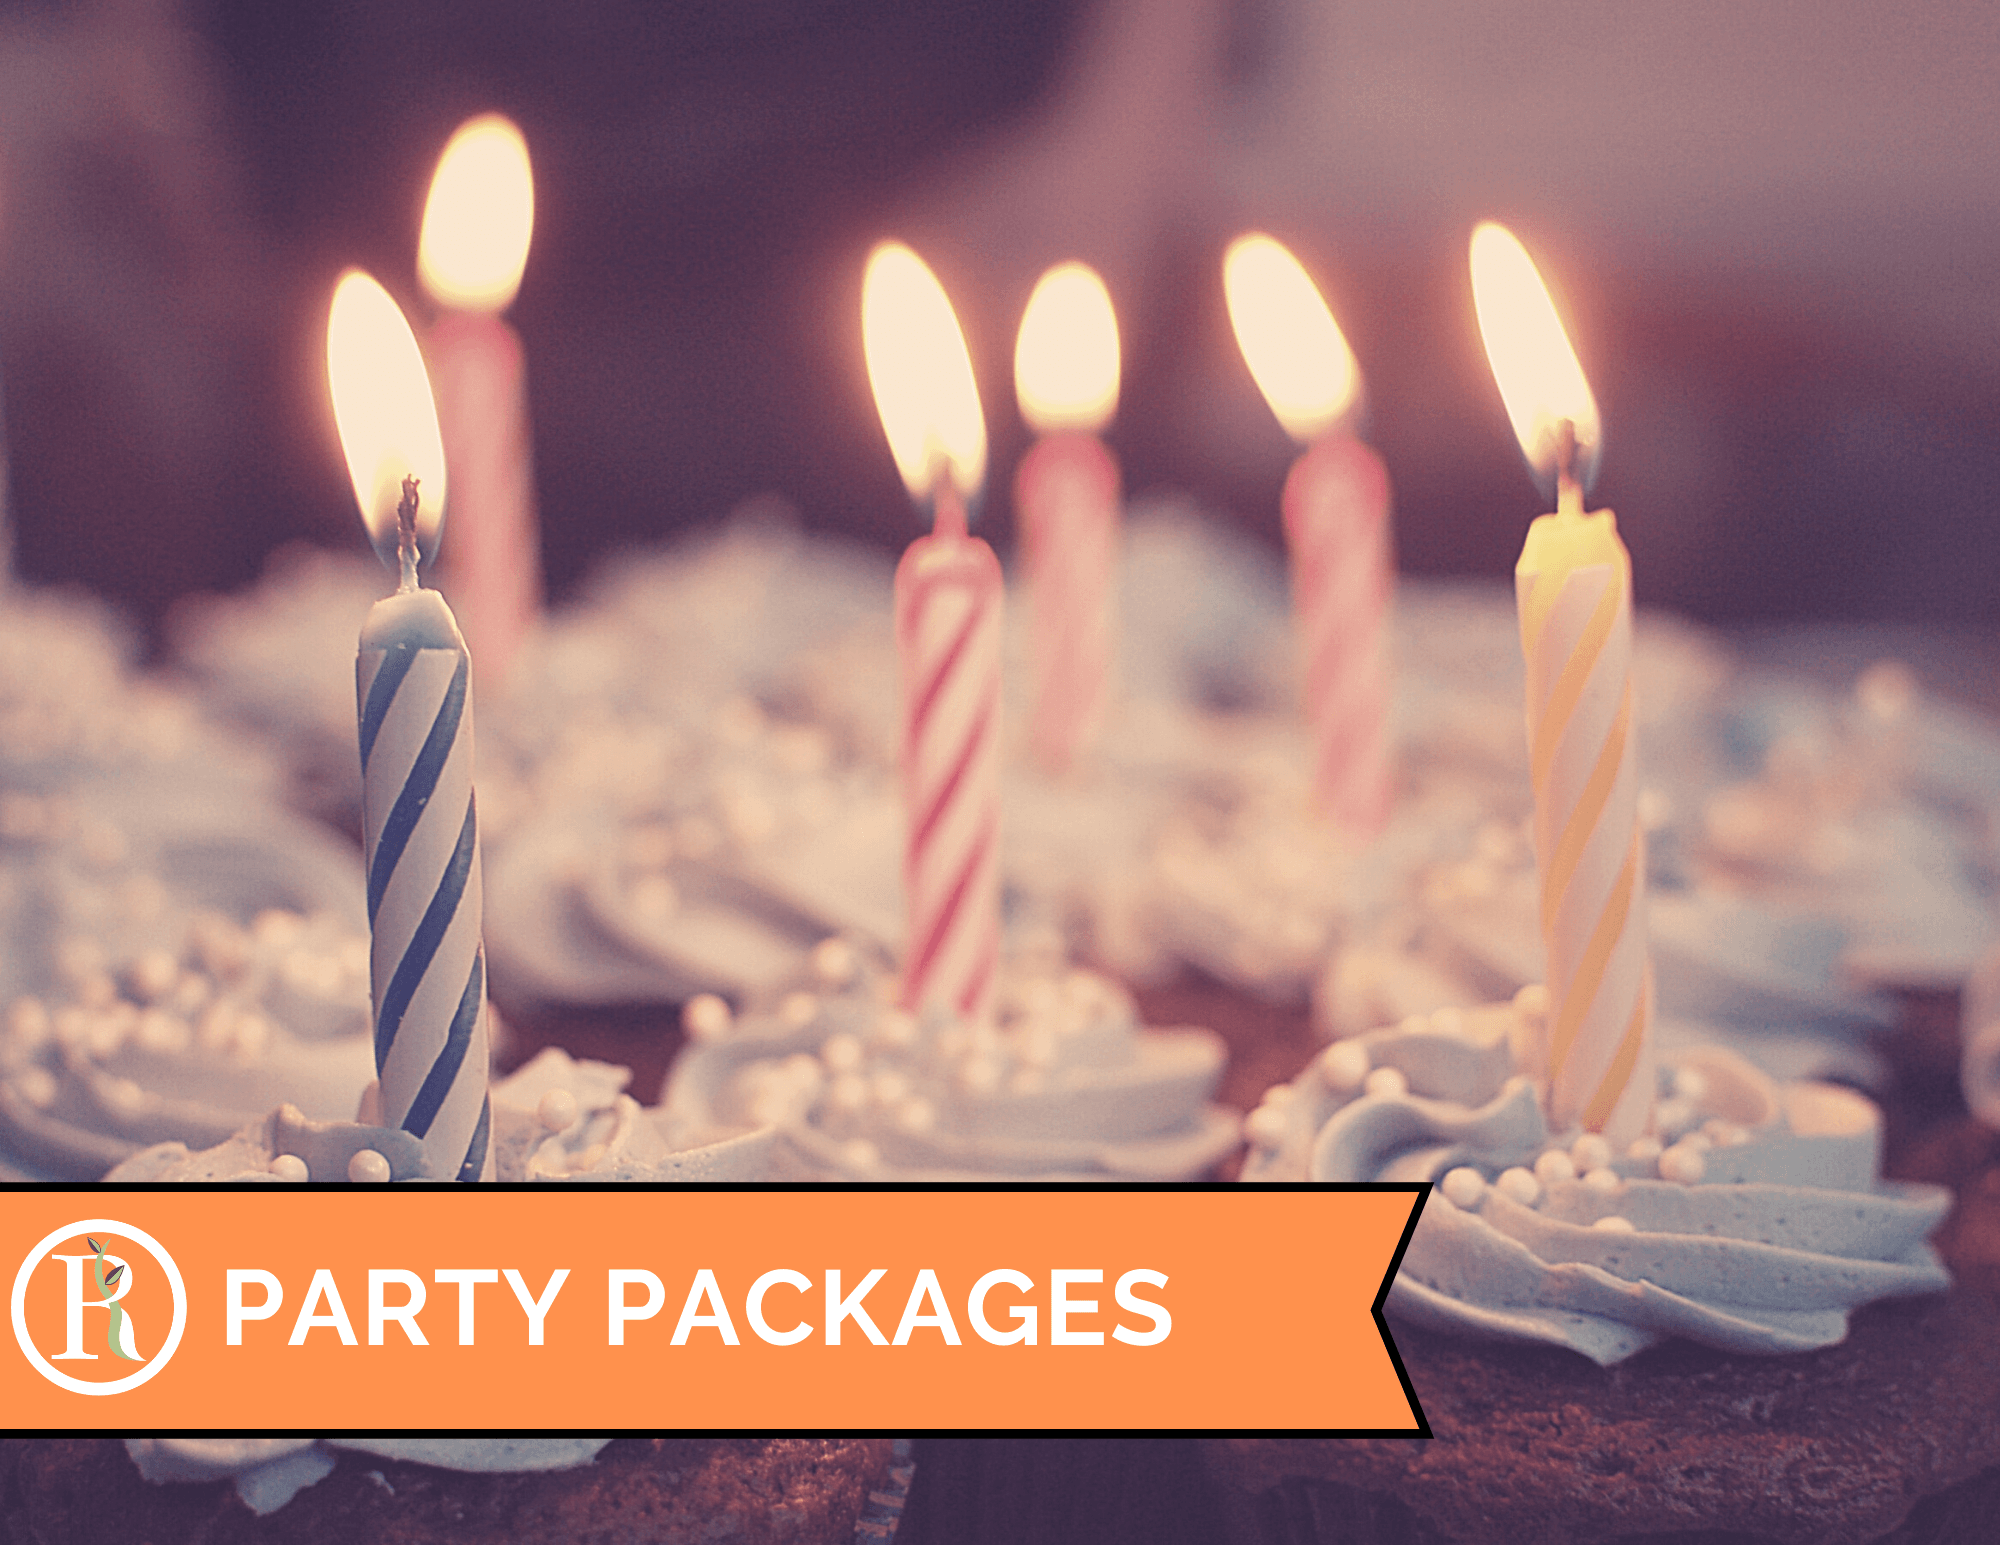 PARTY PACKAGES 3